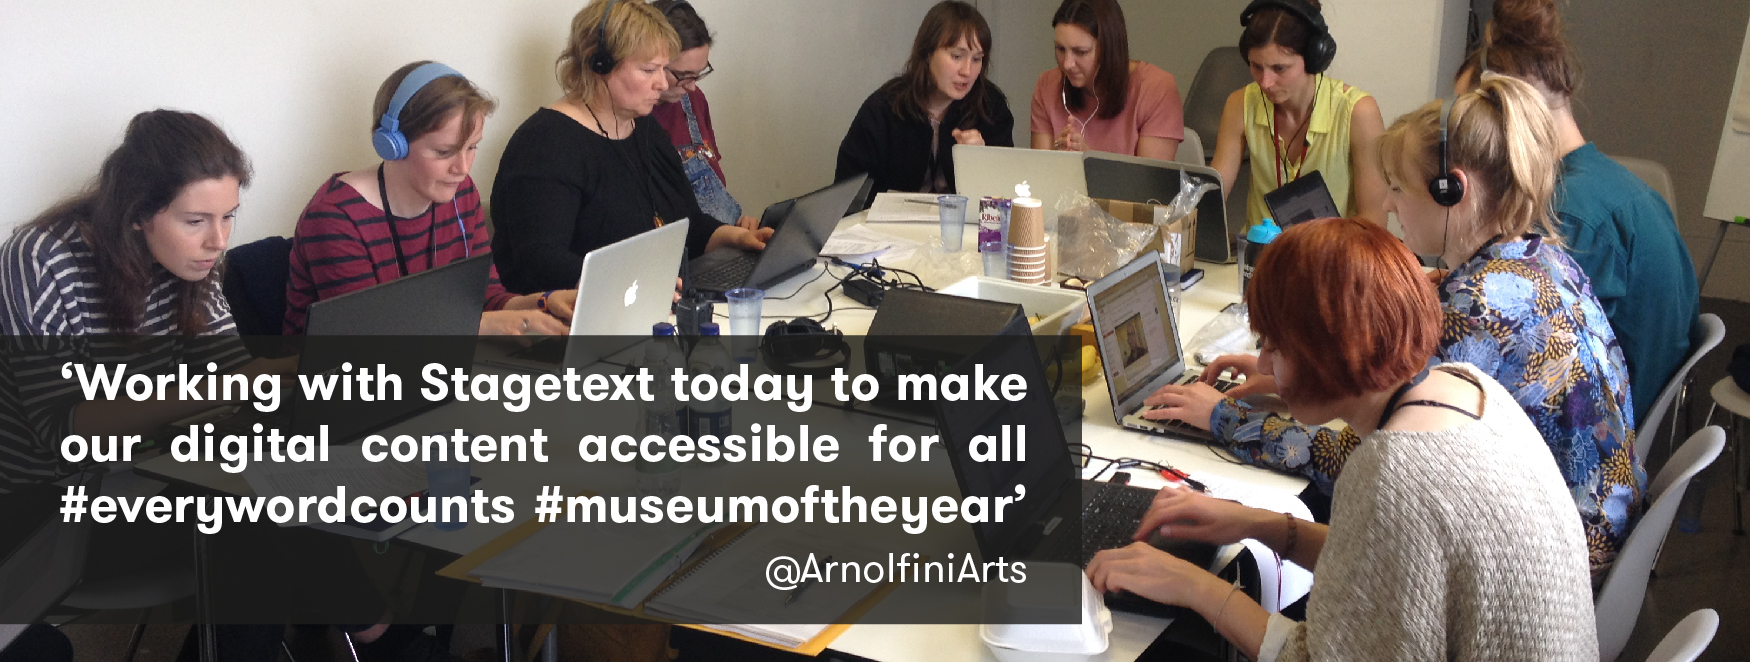 image shows a group of people working with stagtext to make their musuem more accessible